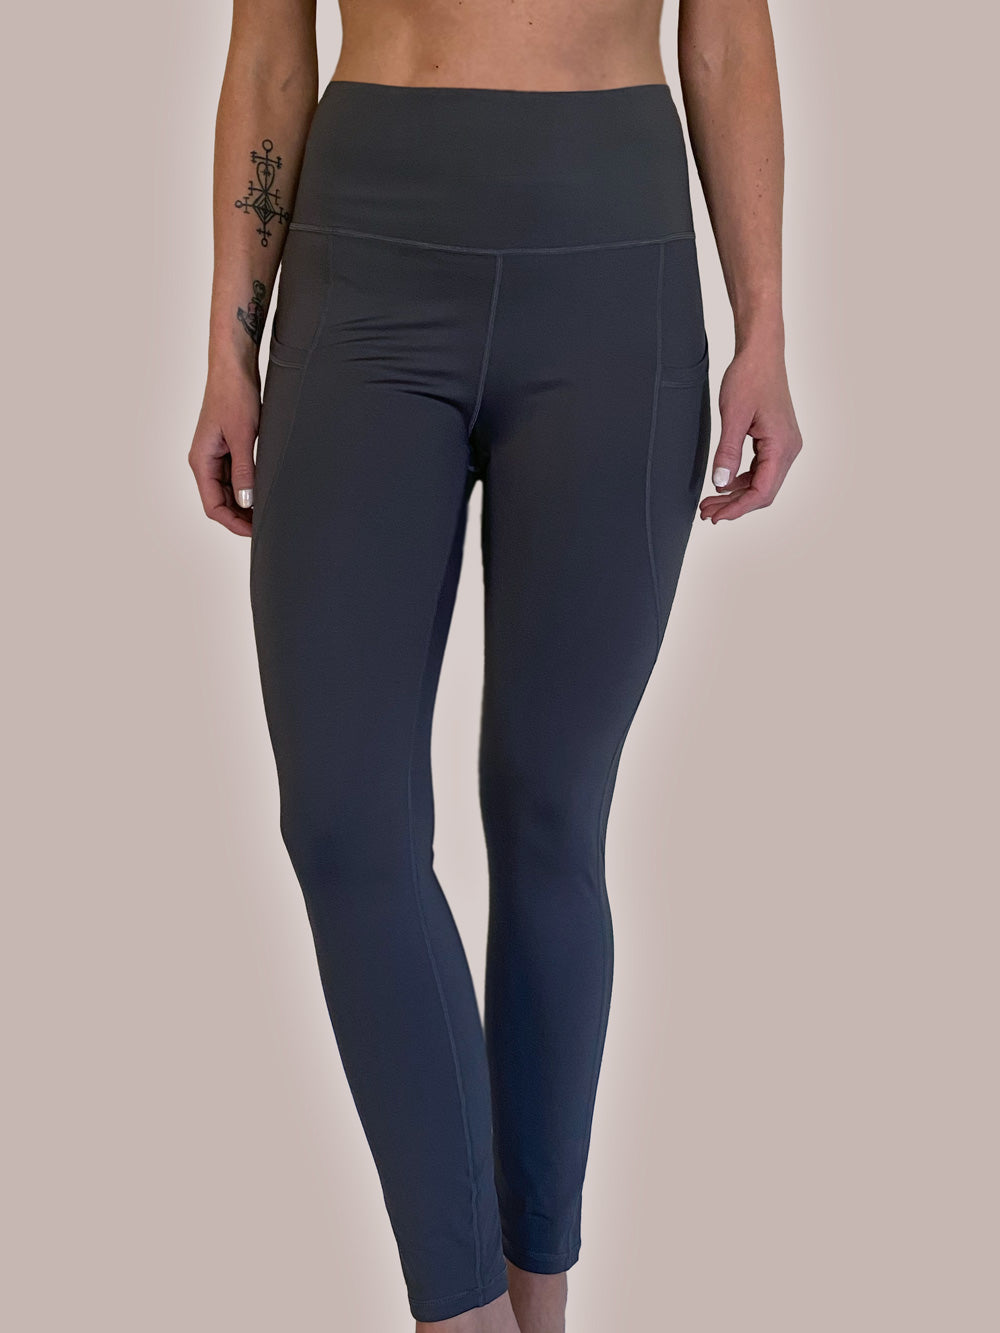 Koala Grey Legging